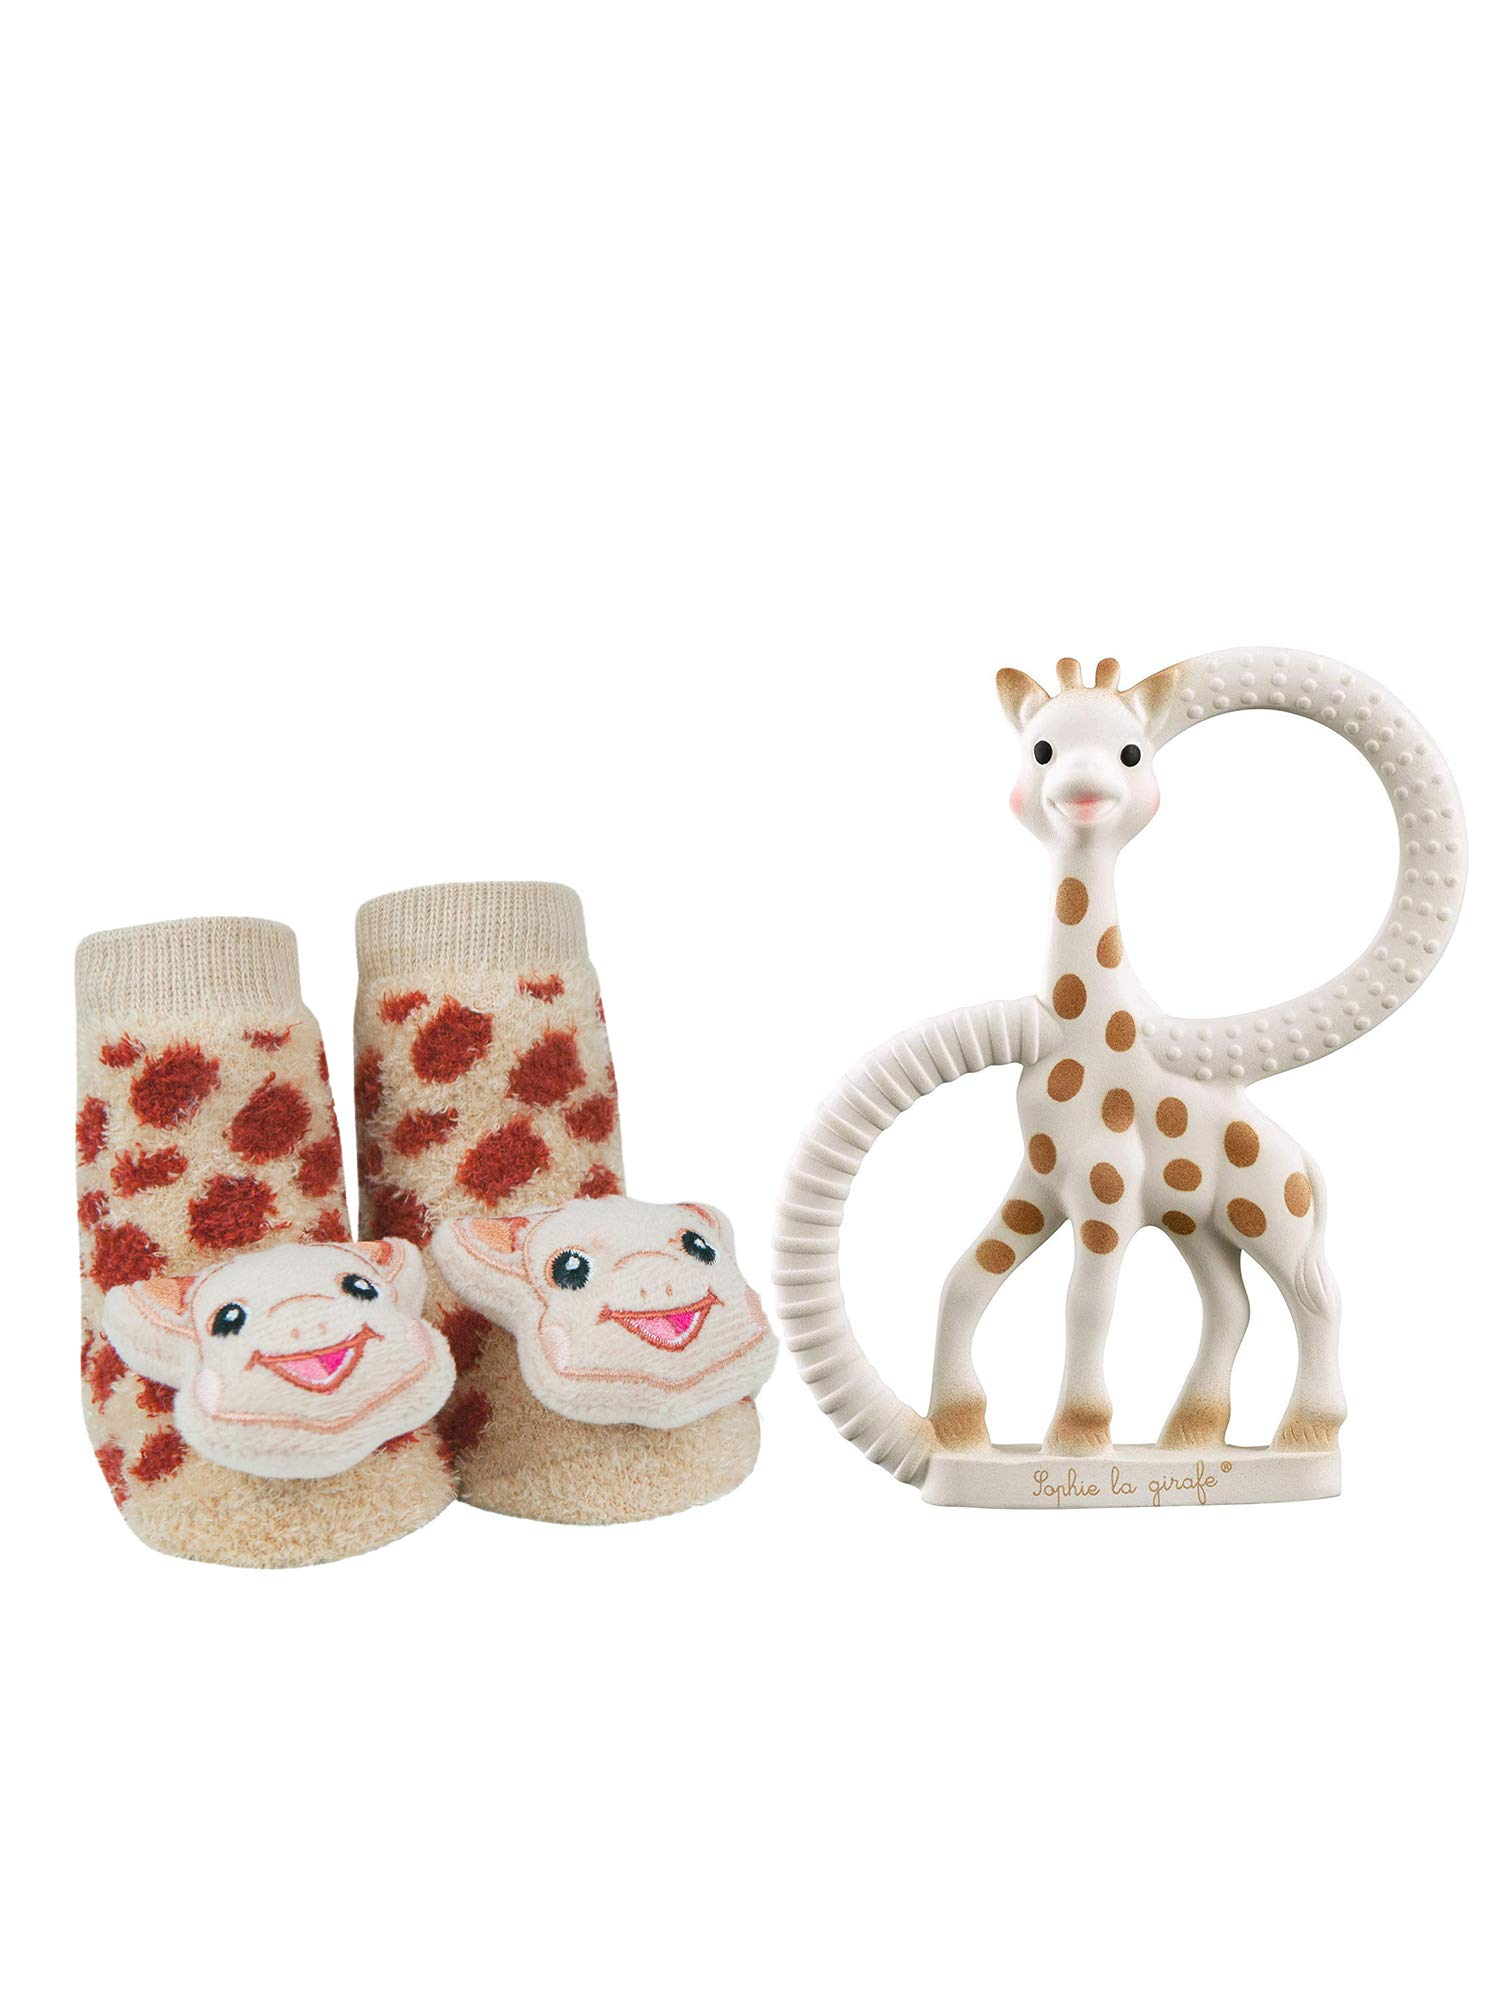 Vulli Sophie La Girafe Baby Teether Toy and Waddle Sophie The Giraffe Rattle Socks Newborn Set Natural Rubber Teething Ring Unisex Animal Sensory Chew Toys Gum Massager Oral Pain Relief Soother by Vulli